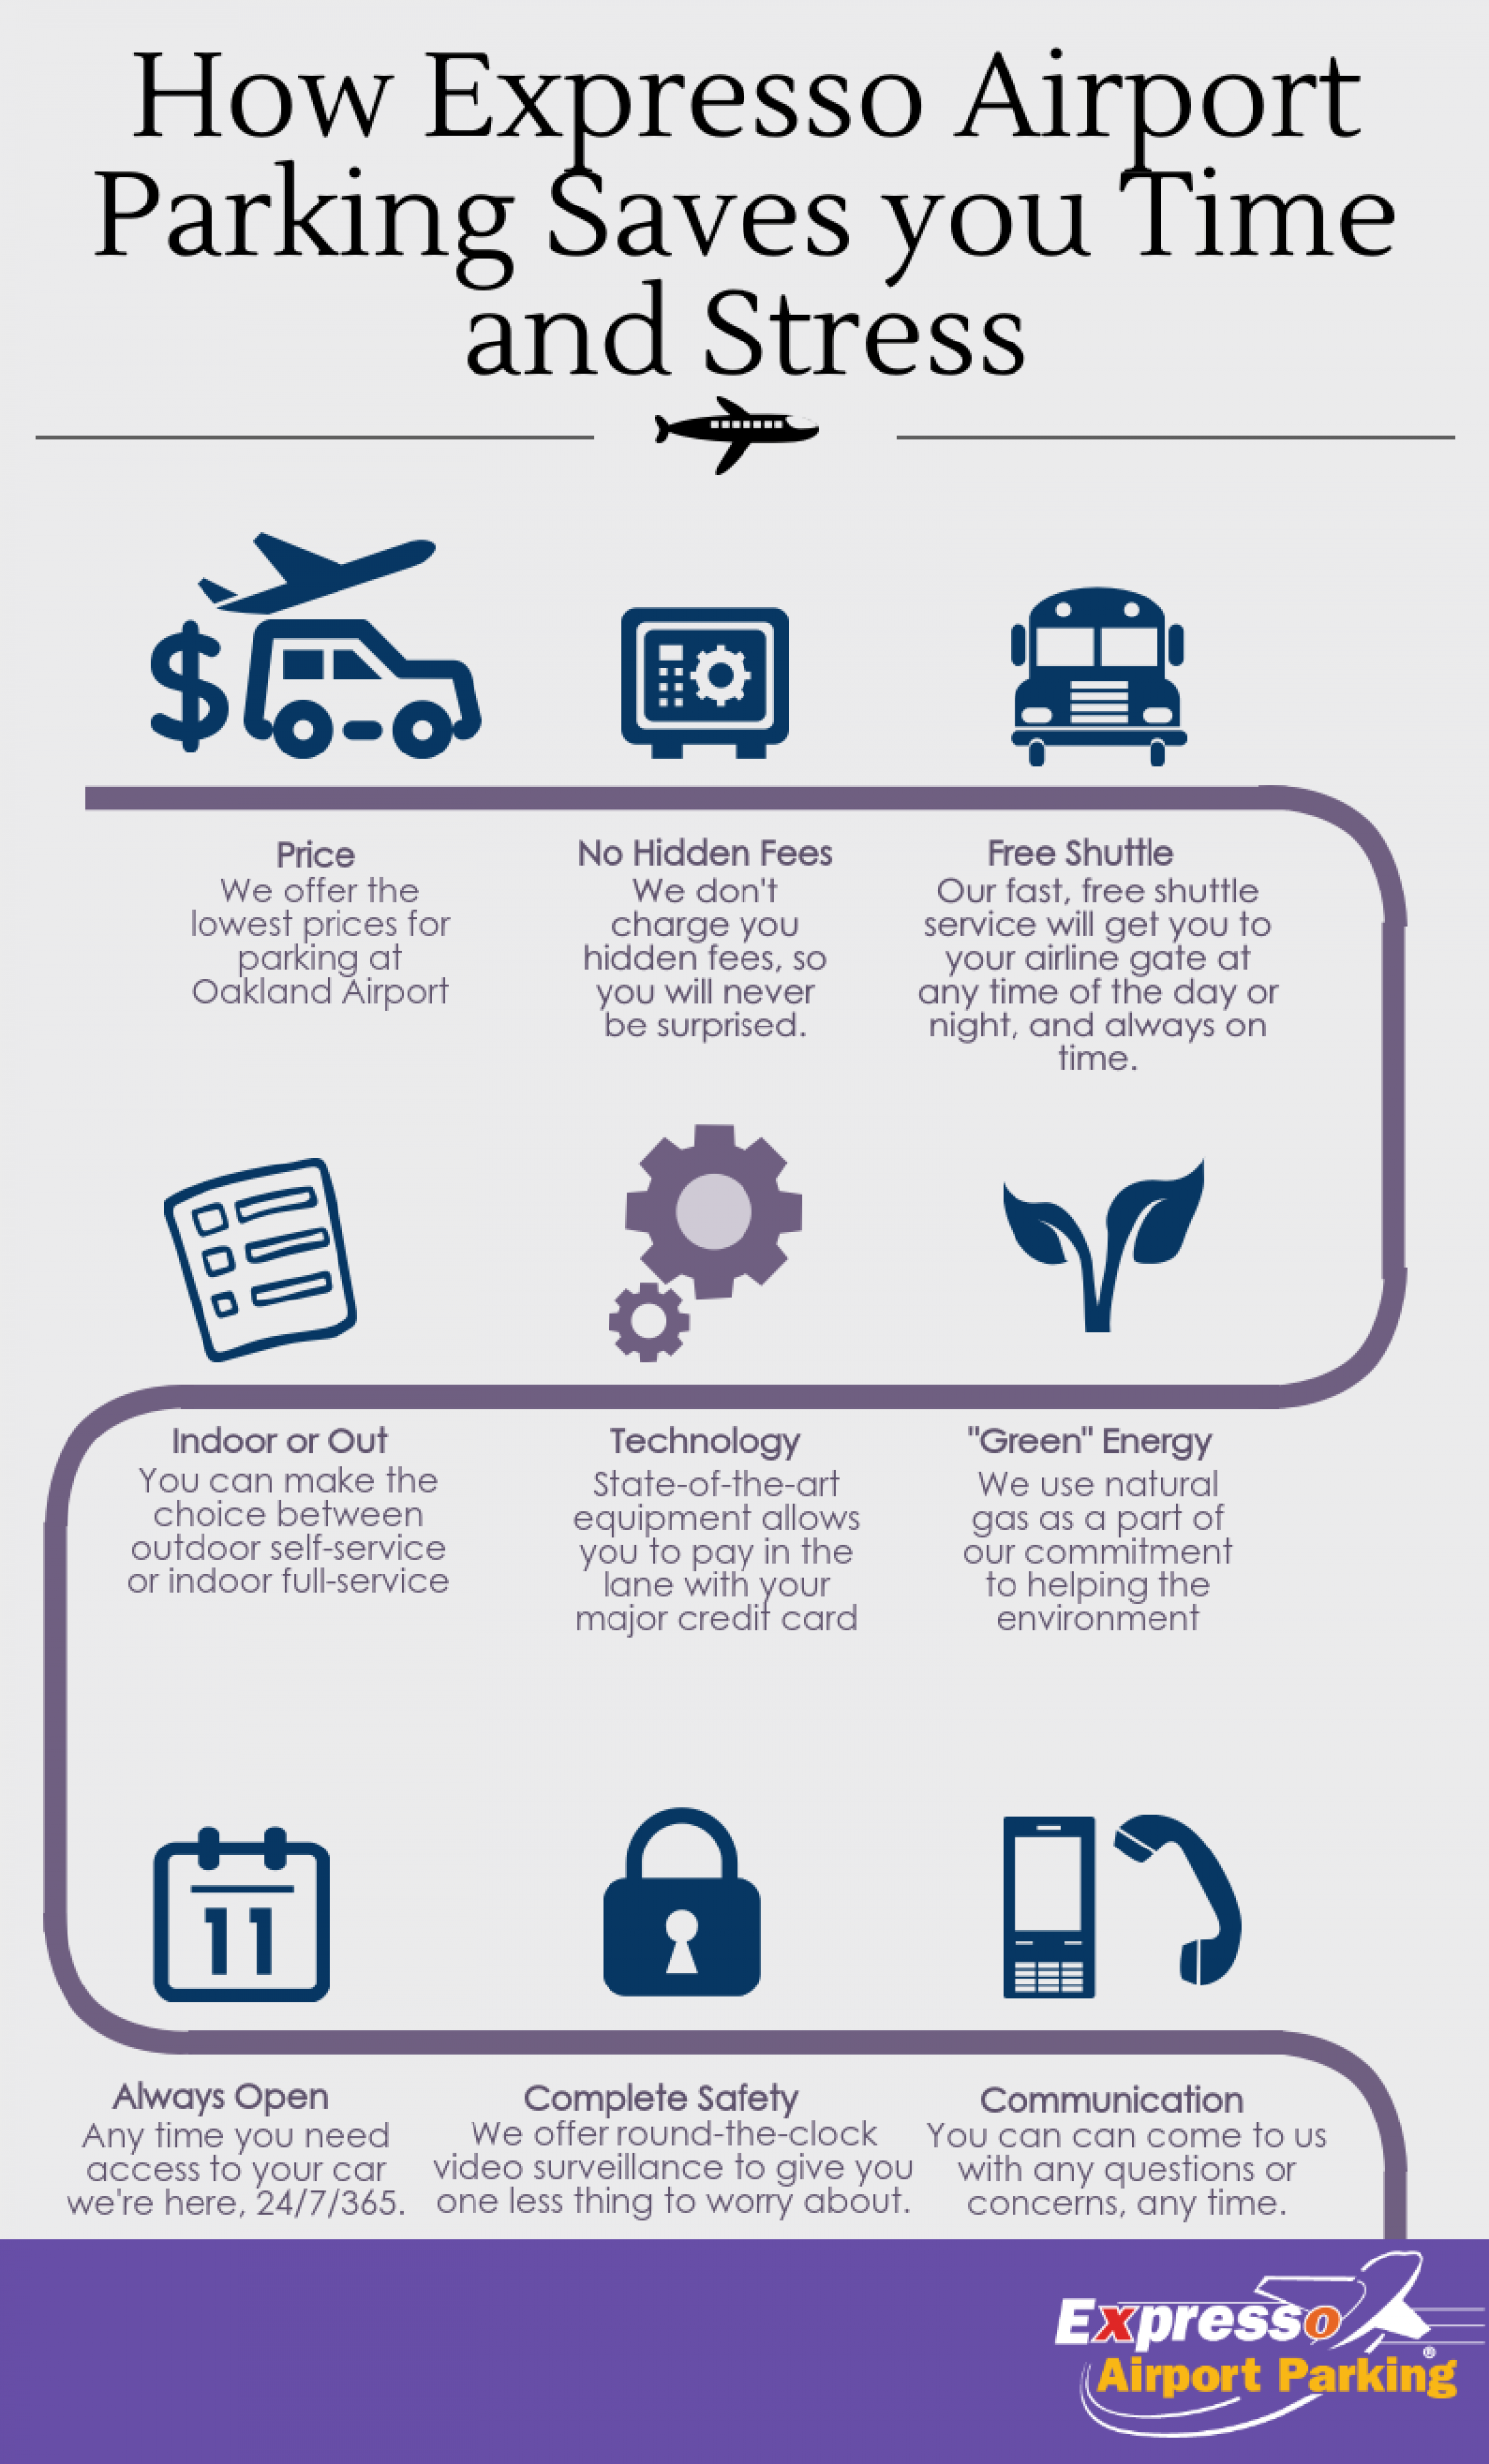 How Expresso Airport Parking Save you Time & Money! Infographic